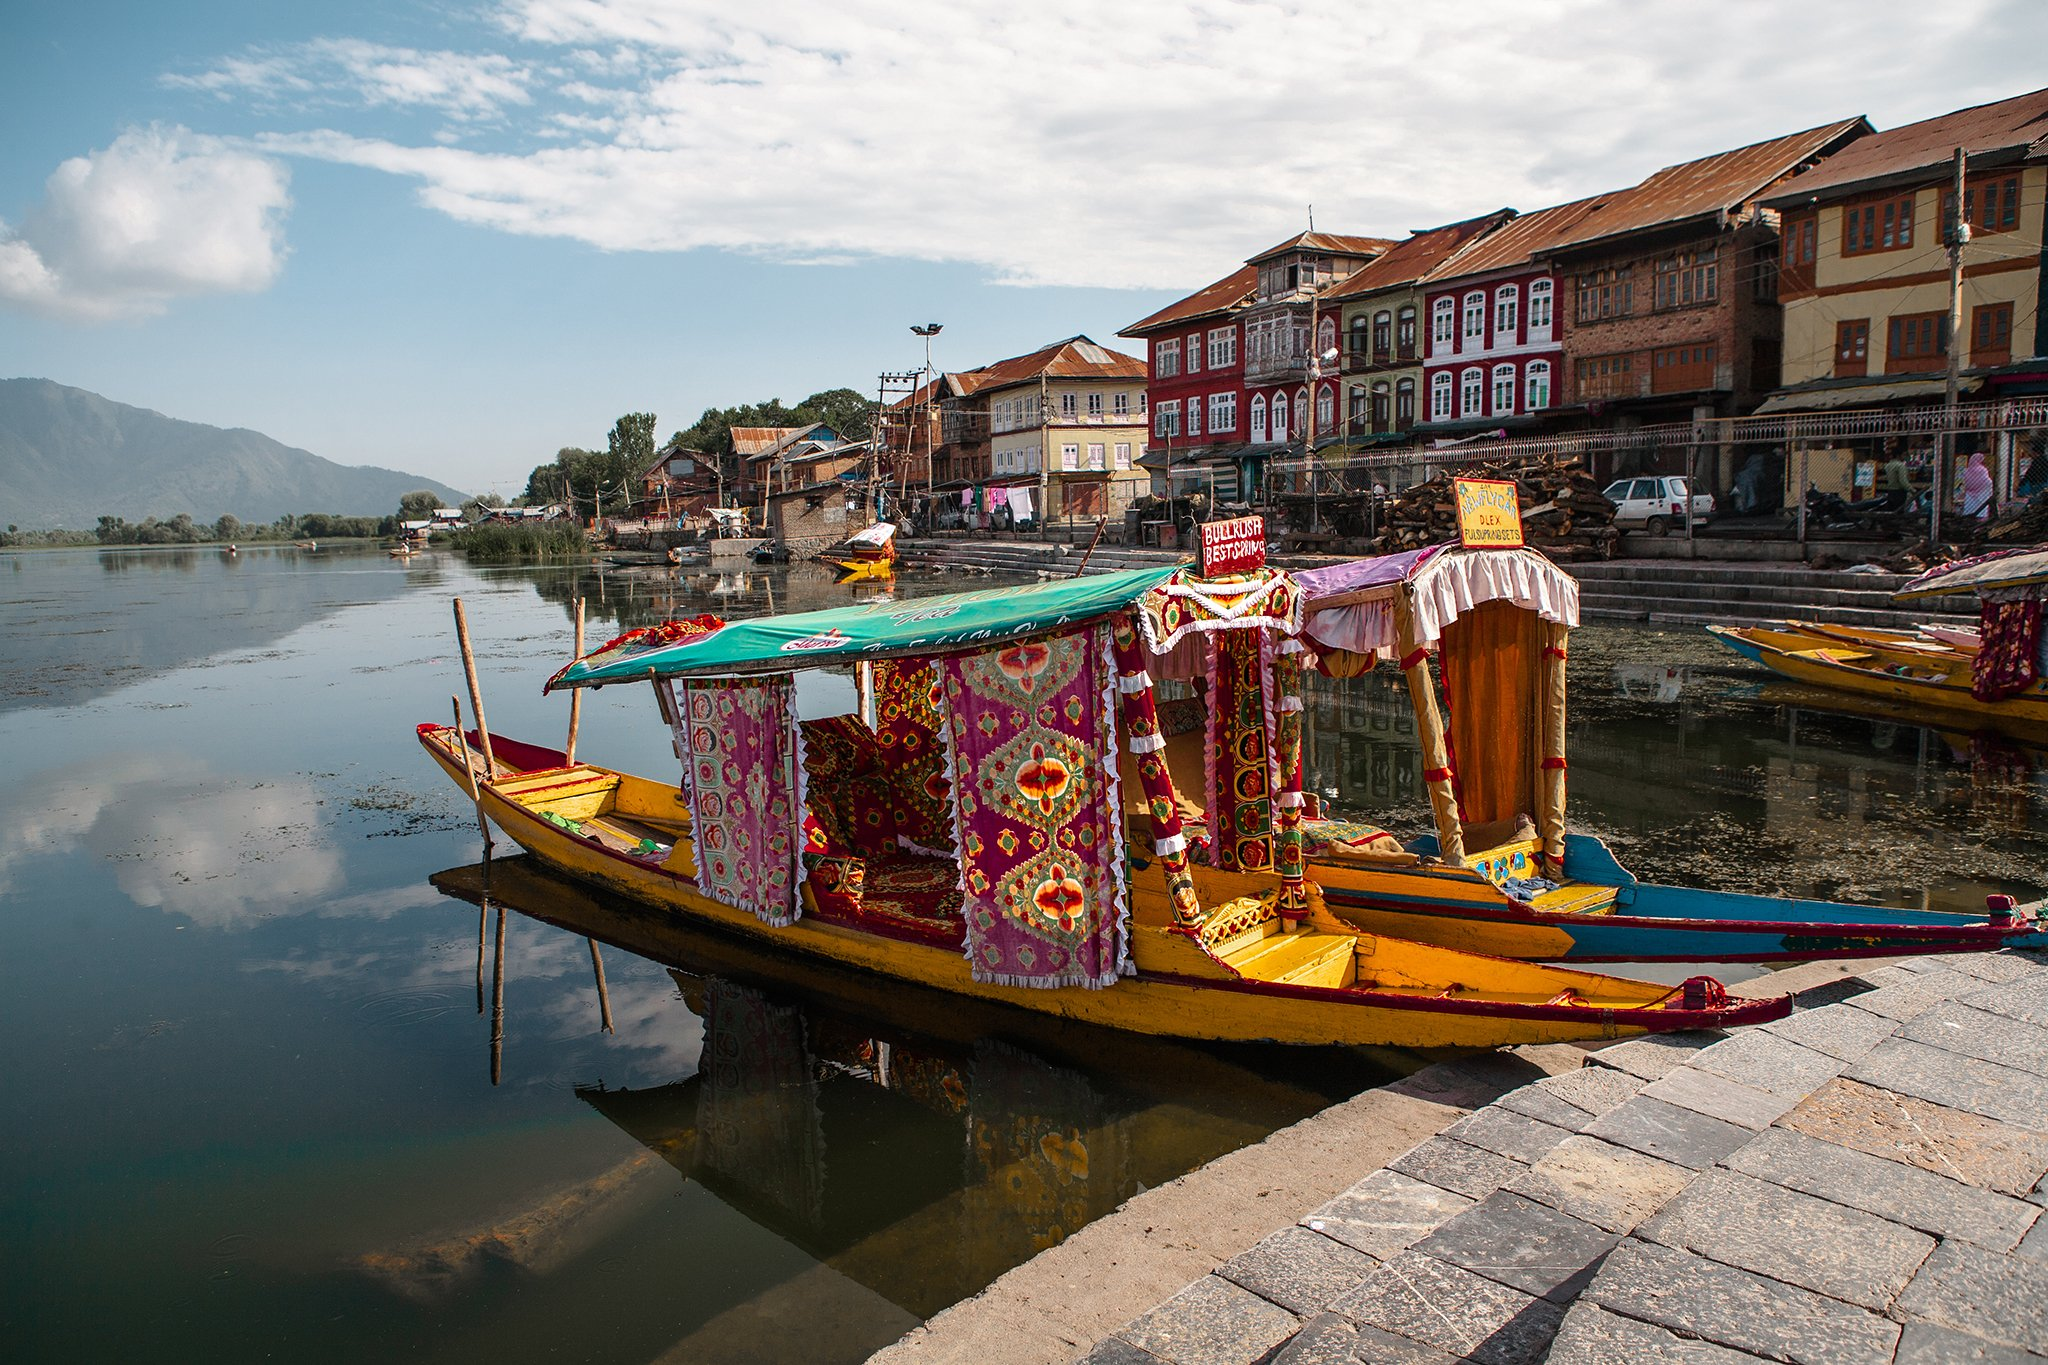 Shikara, a type of boat used in Kashmir for transportation in water is a major tourist attraction of Dal Lake in Kashmir where tourists are given rides in the Dal lake in Shikaras decorated with colourful fabrics and bright colours.